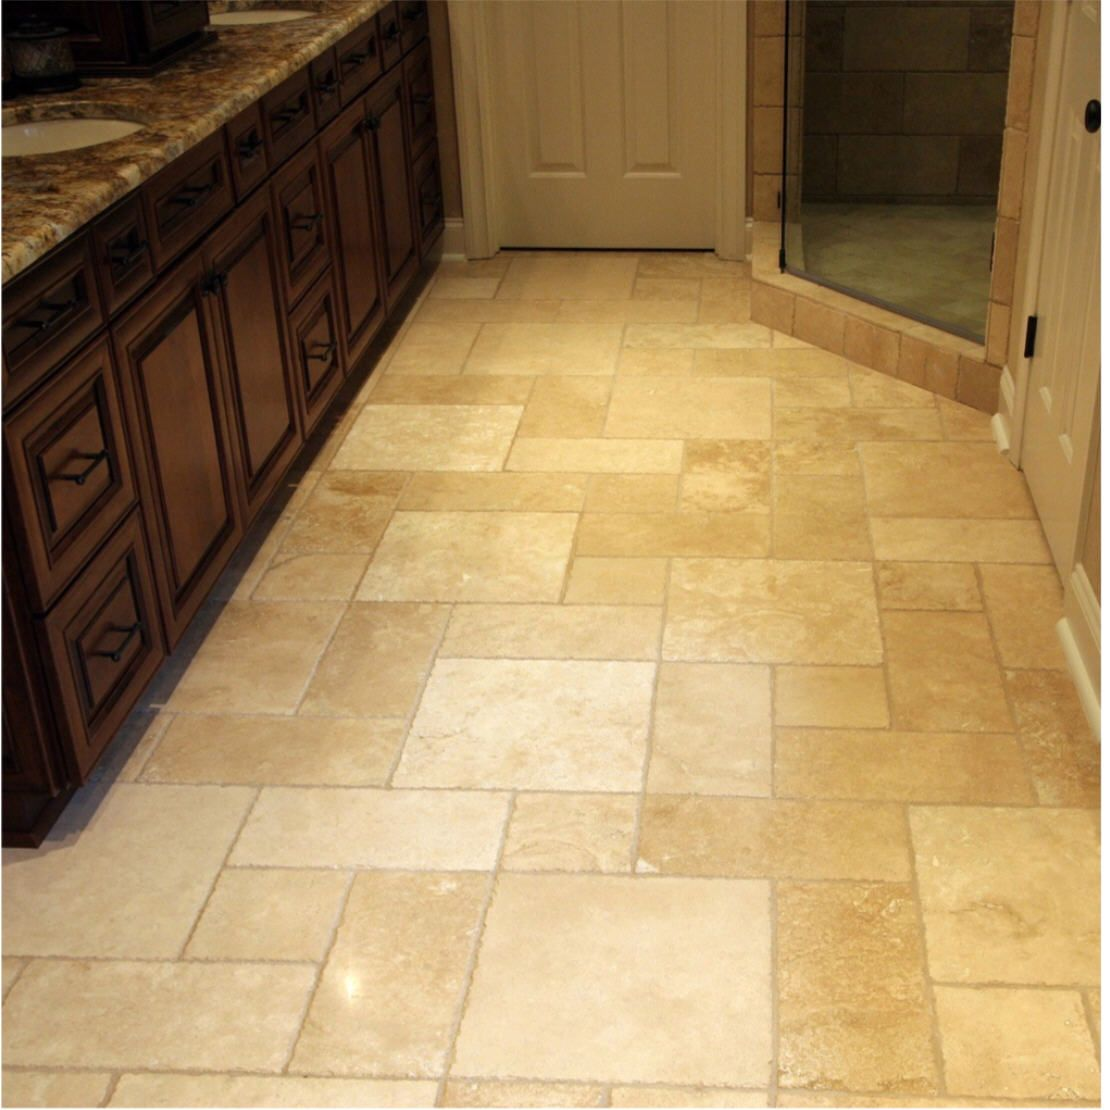 Ceramic Floor Tile Designs travertine tile floor pattern called hopscotch | affordable design